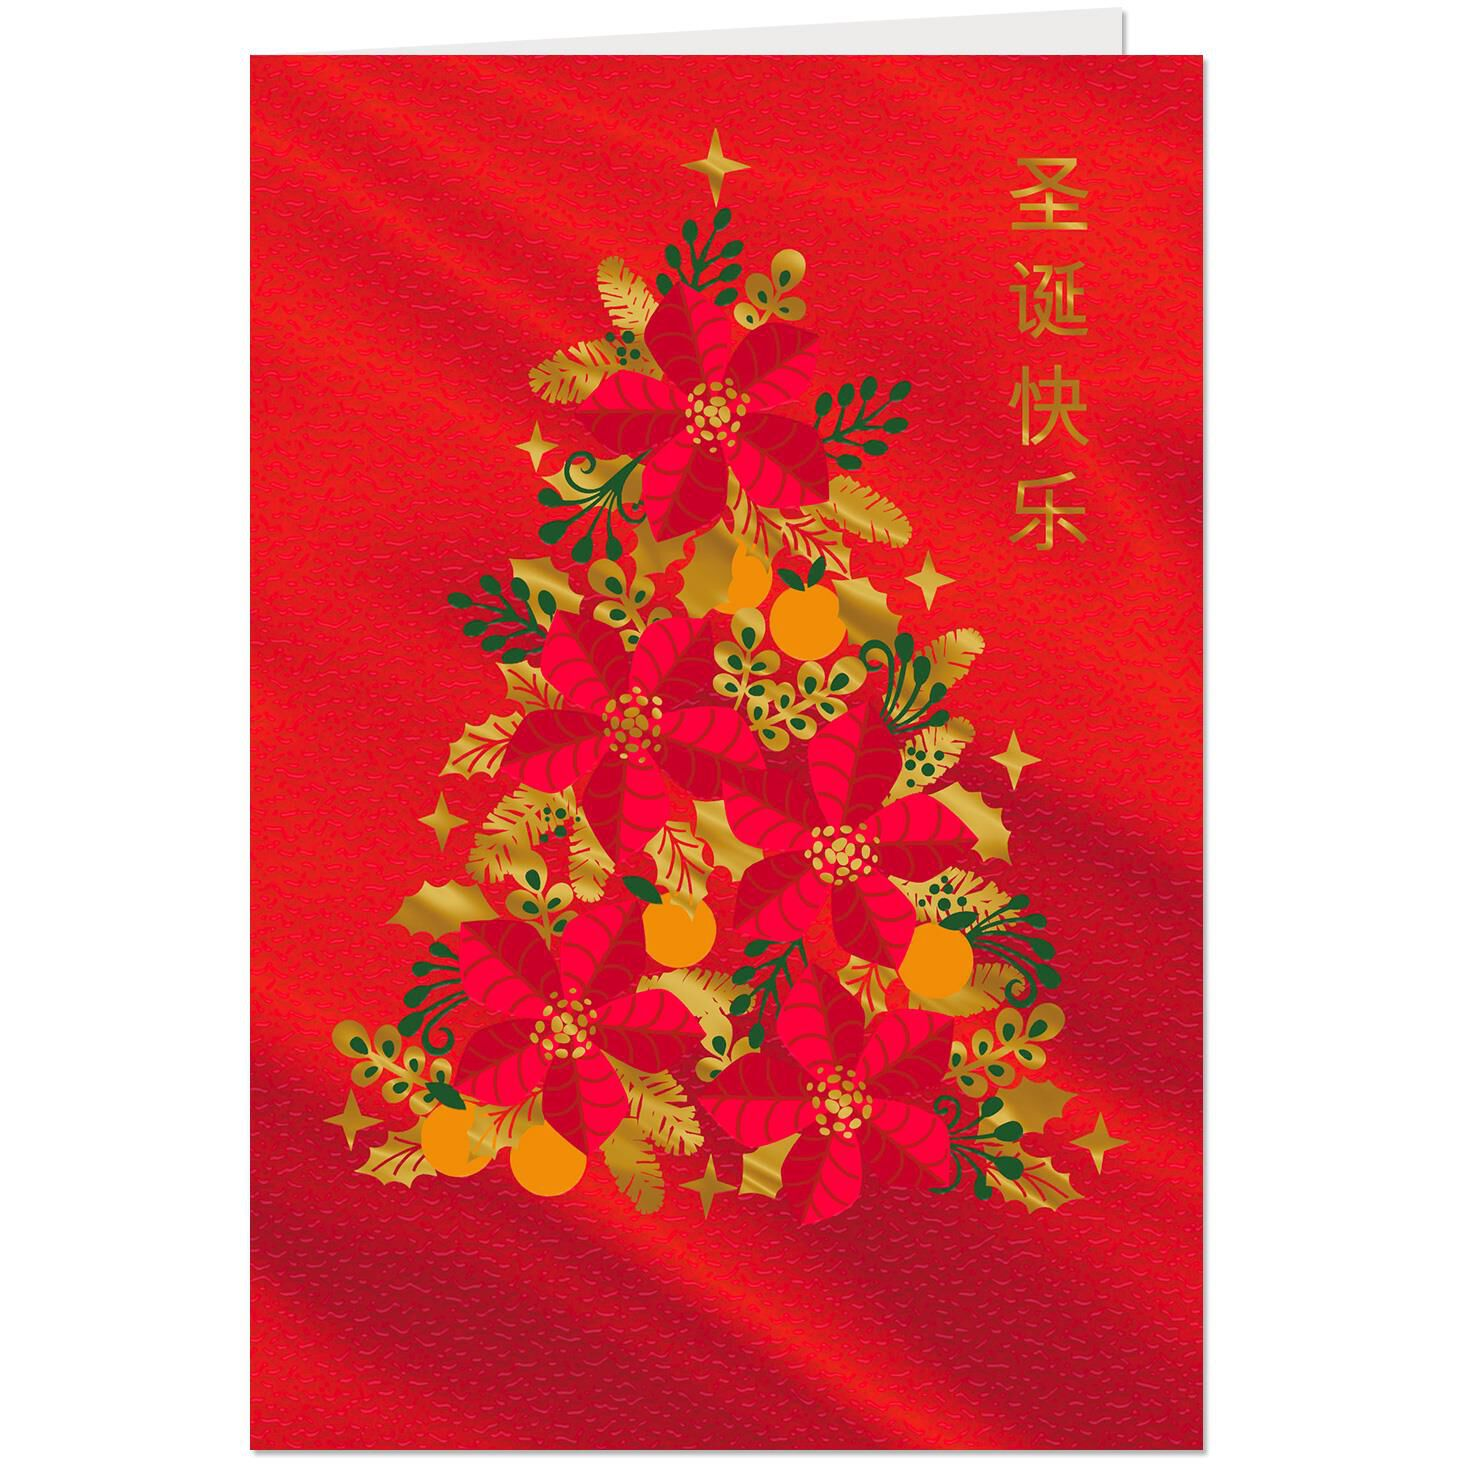 Poinsettia Tree Chinese Language Christmas Card Greeting Cards